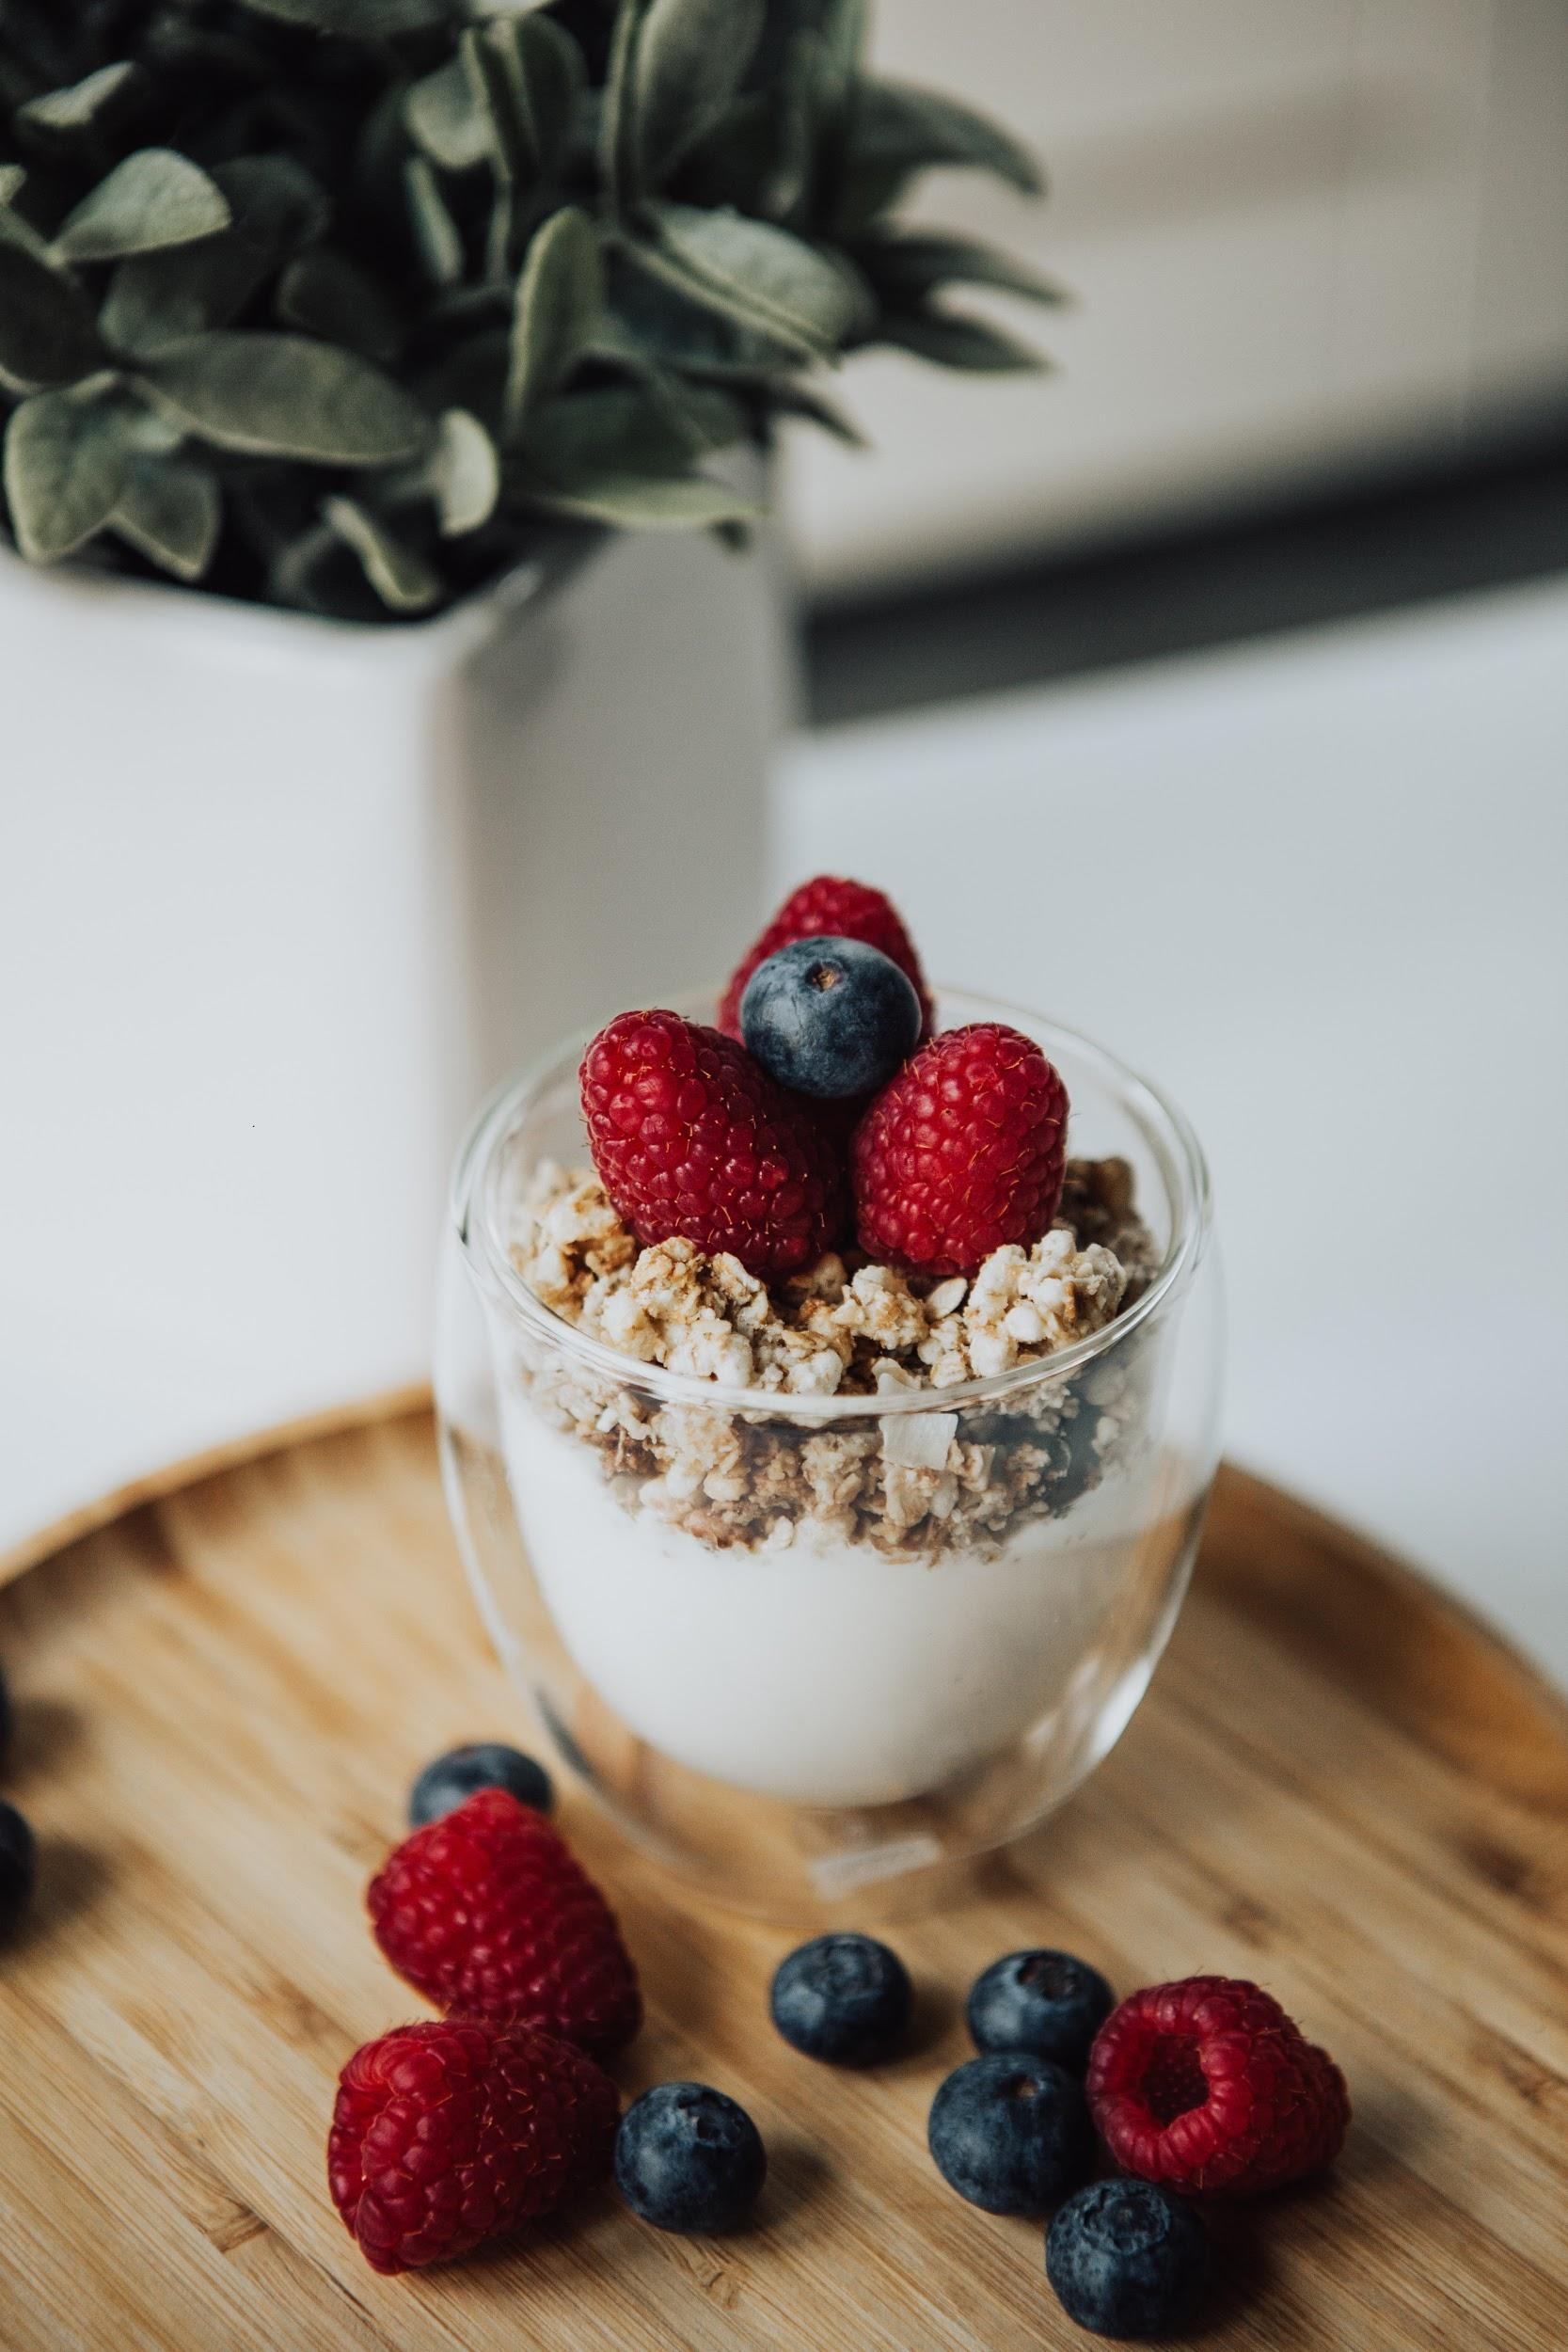 A yogurt parfait with granola and fresh berries in a clear glass is shown sitting on a table